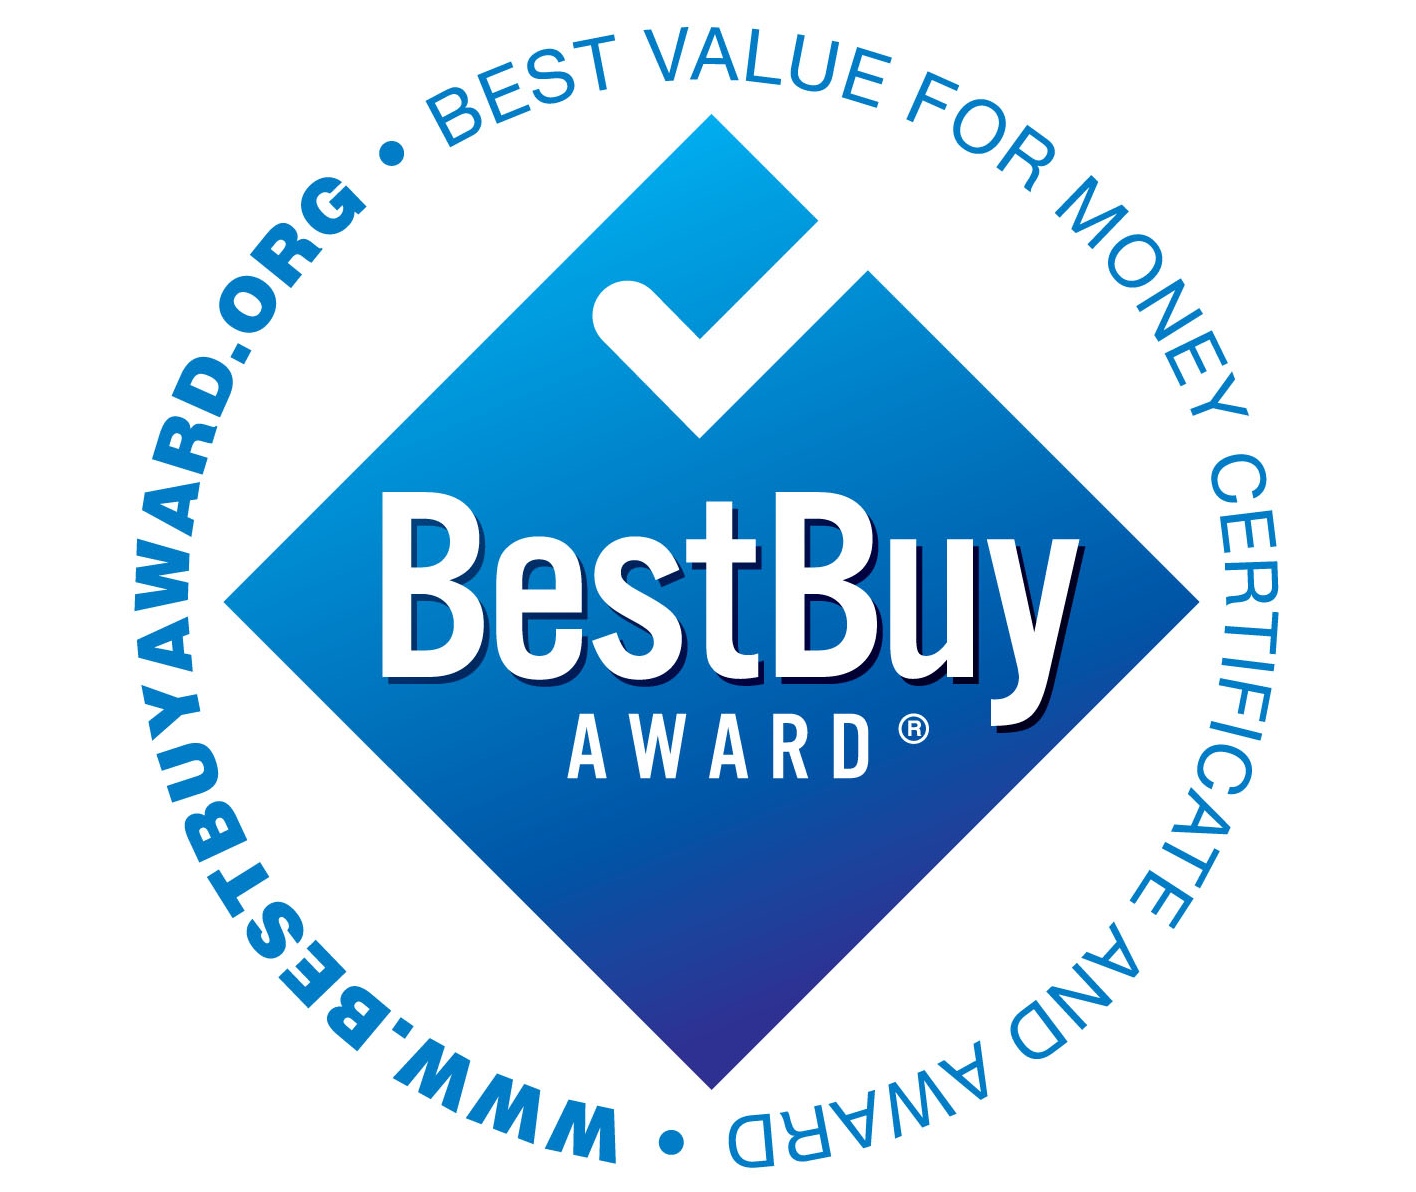 Best Buy Award